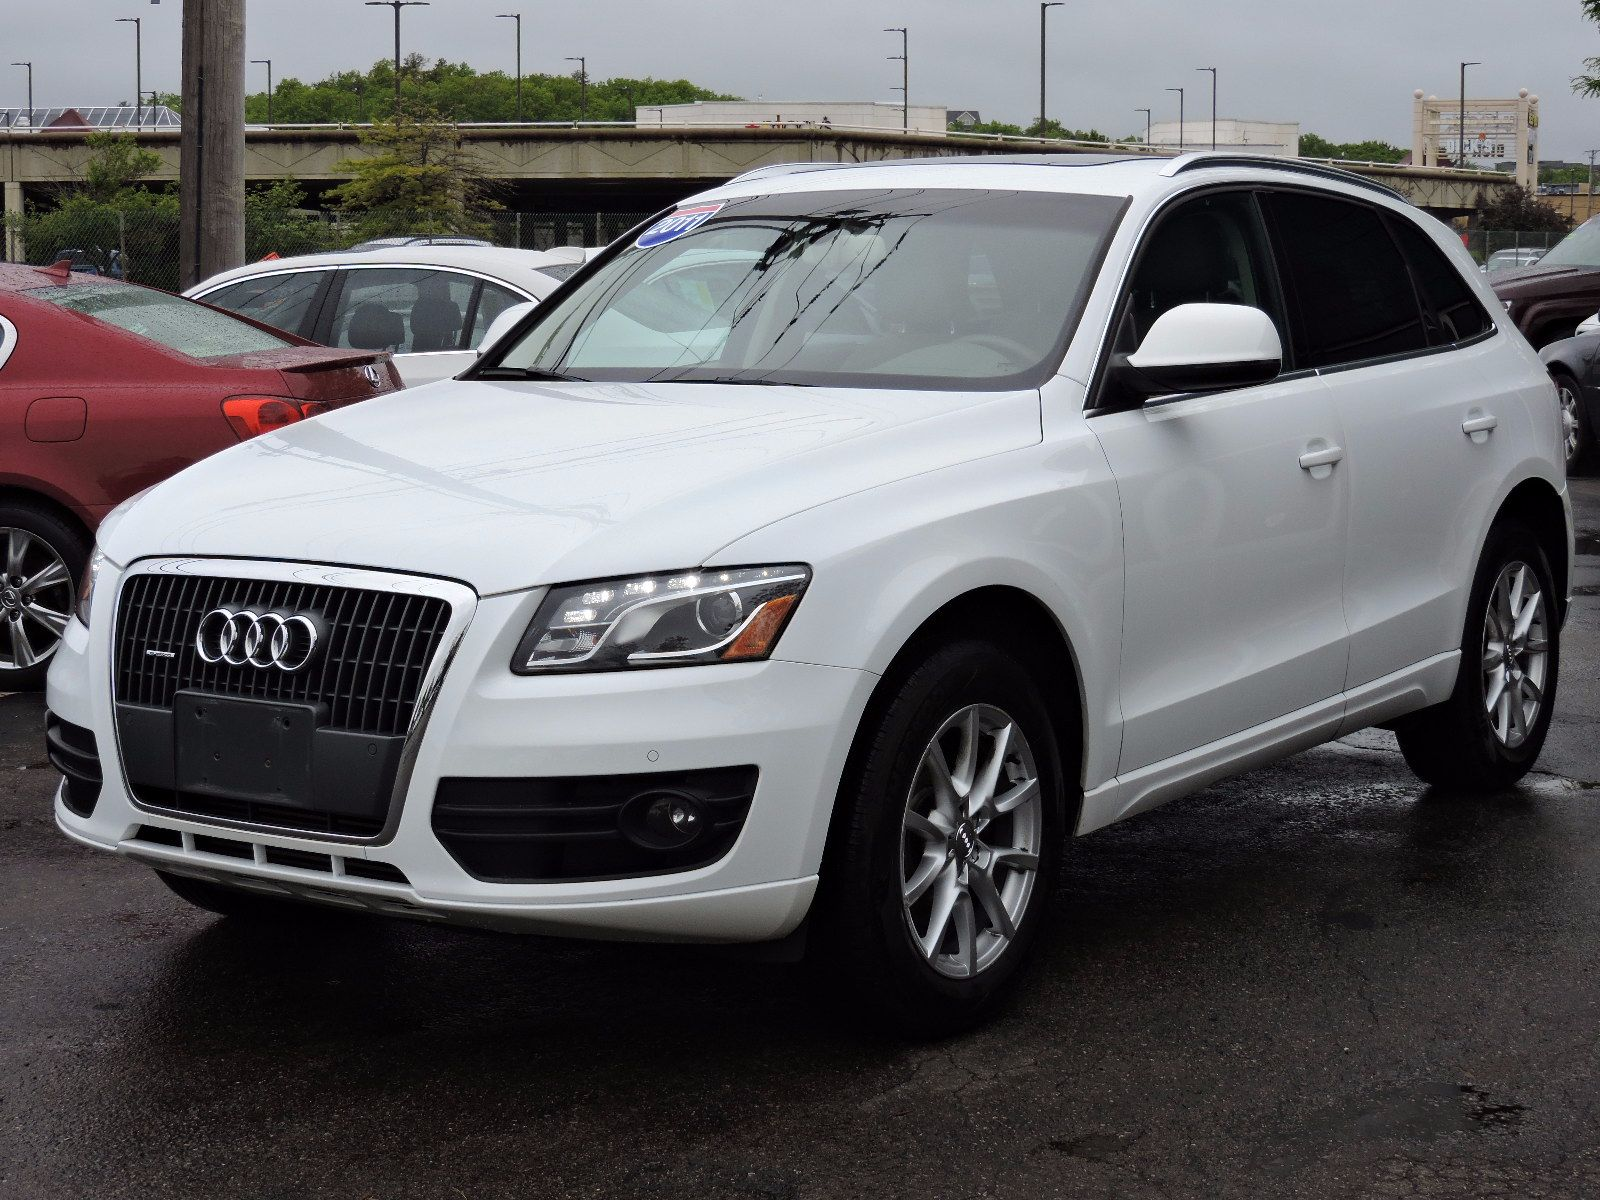 Audi truck 2016 q7 review uae